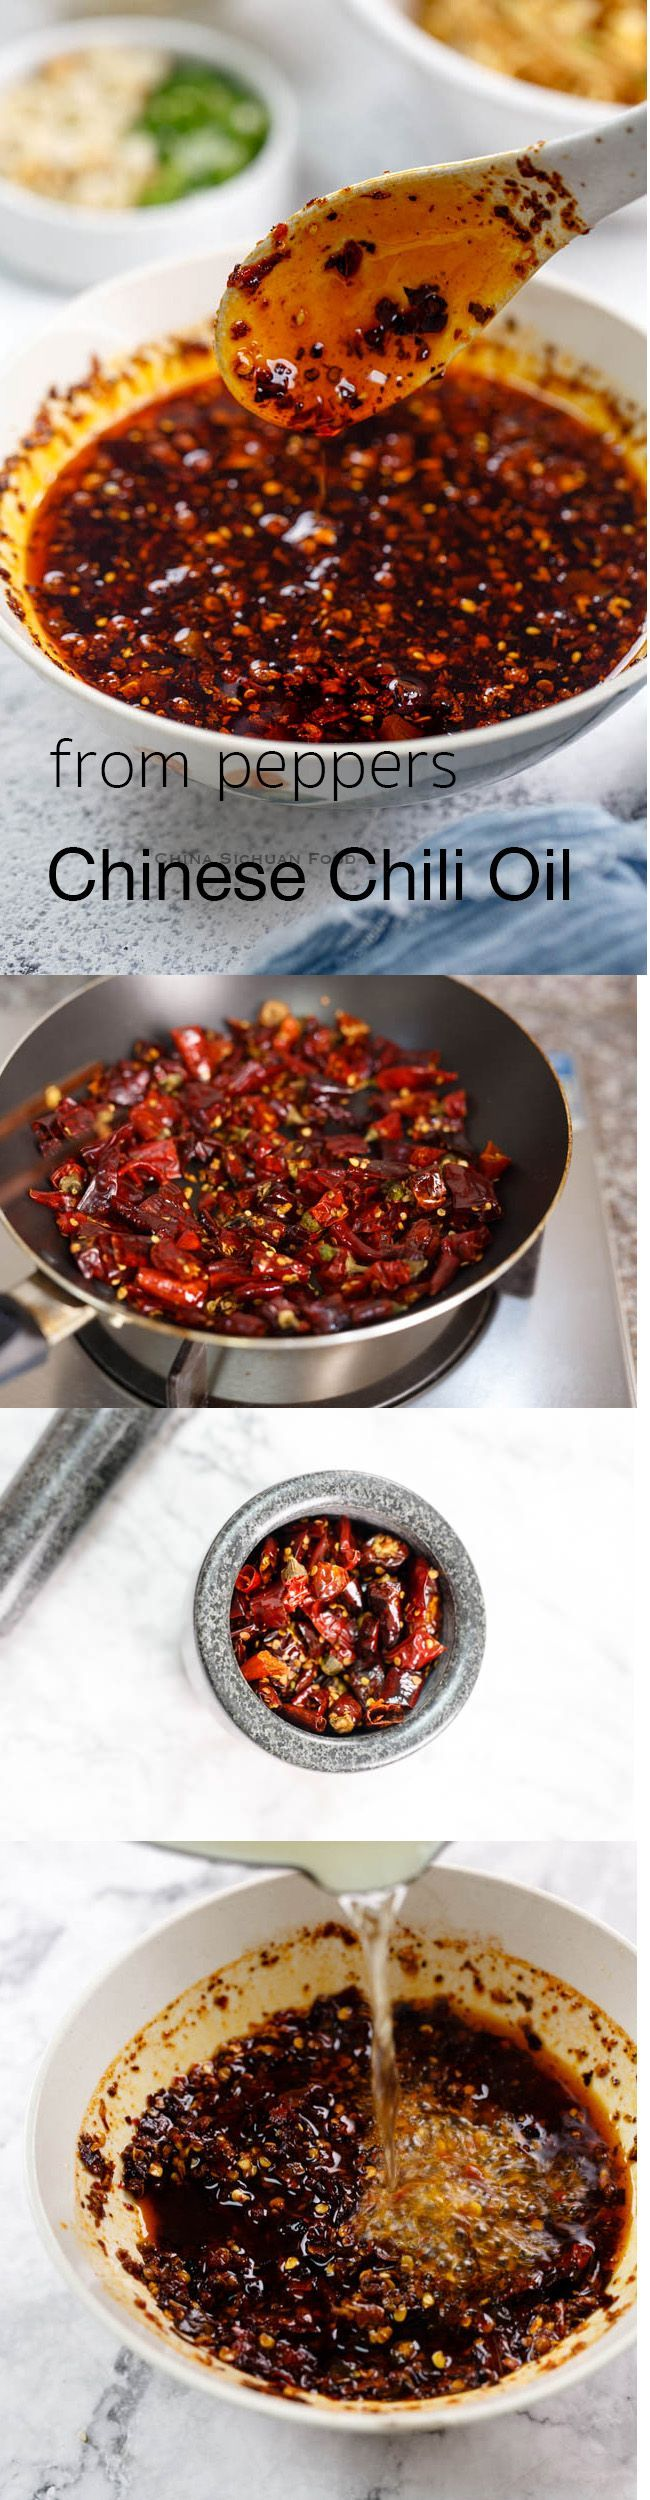 How To Make Chinese Chili Oil From Whole Peppers A Restaurant Style Approach Recipes Tips And Everything Related To Cooking Fo Food Cooking Recipes Recipes